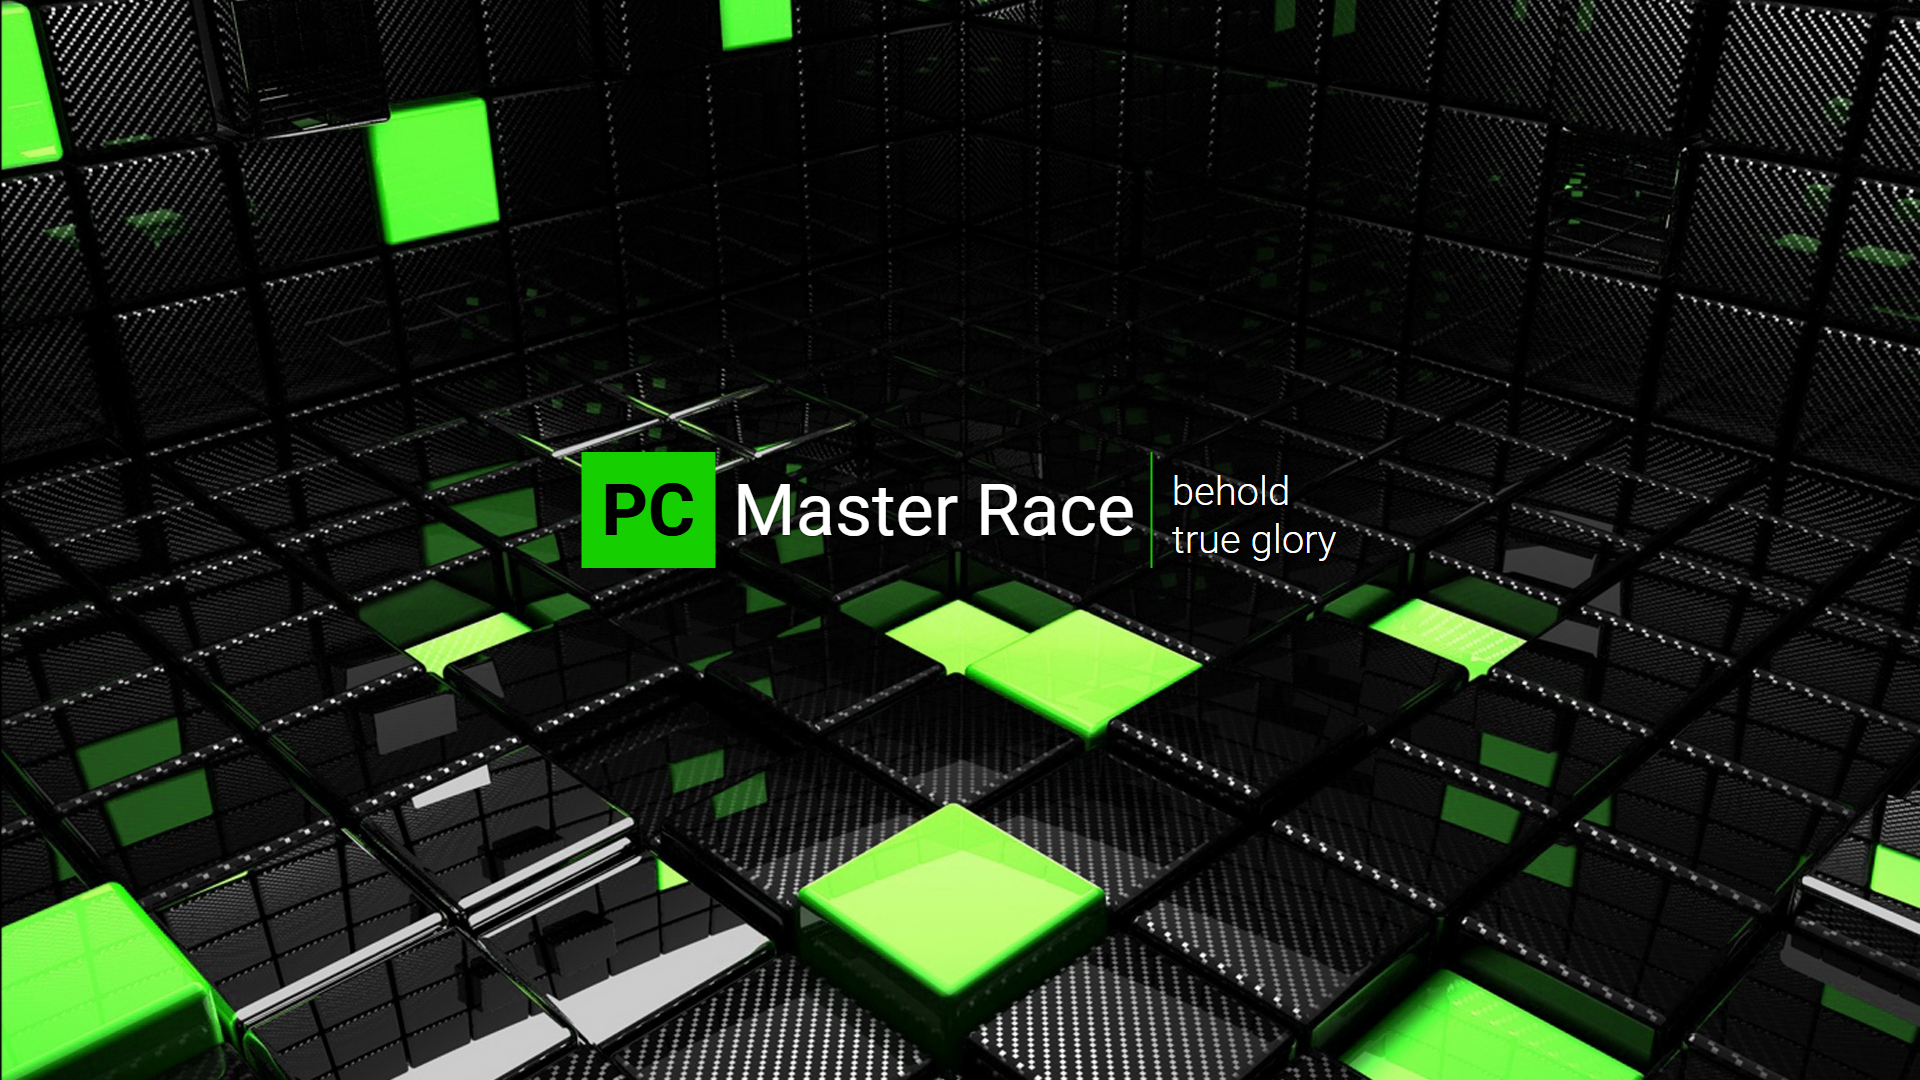 Pc Master Race Wallpaper 1920x1080 Posted By Michelle Simpson